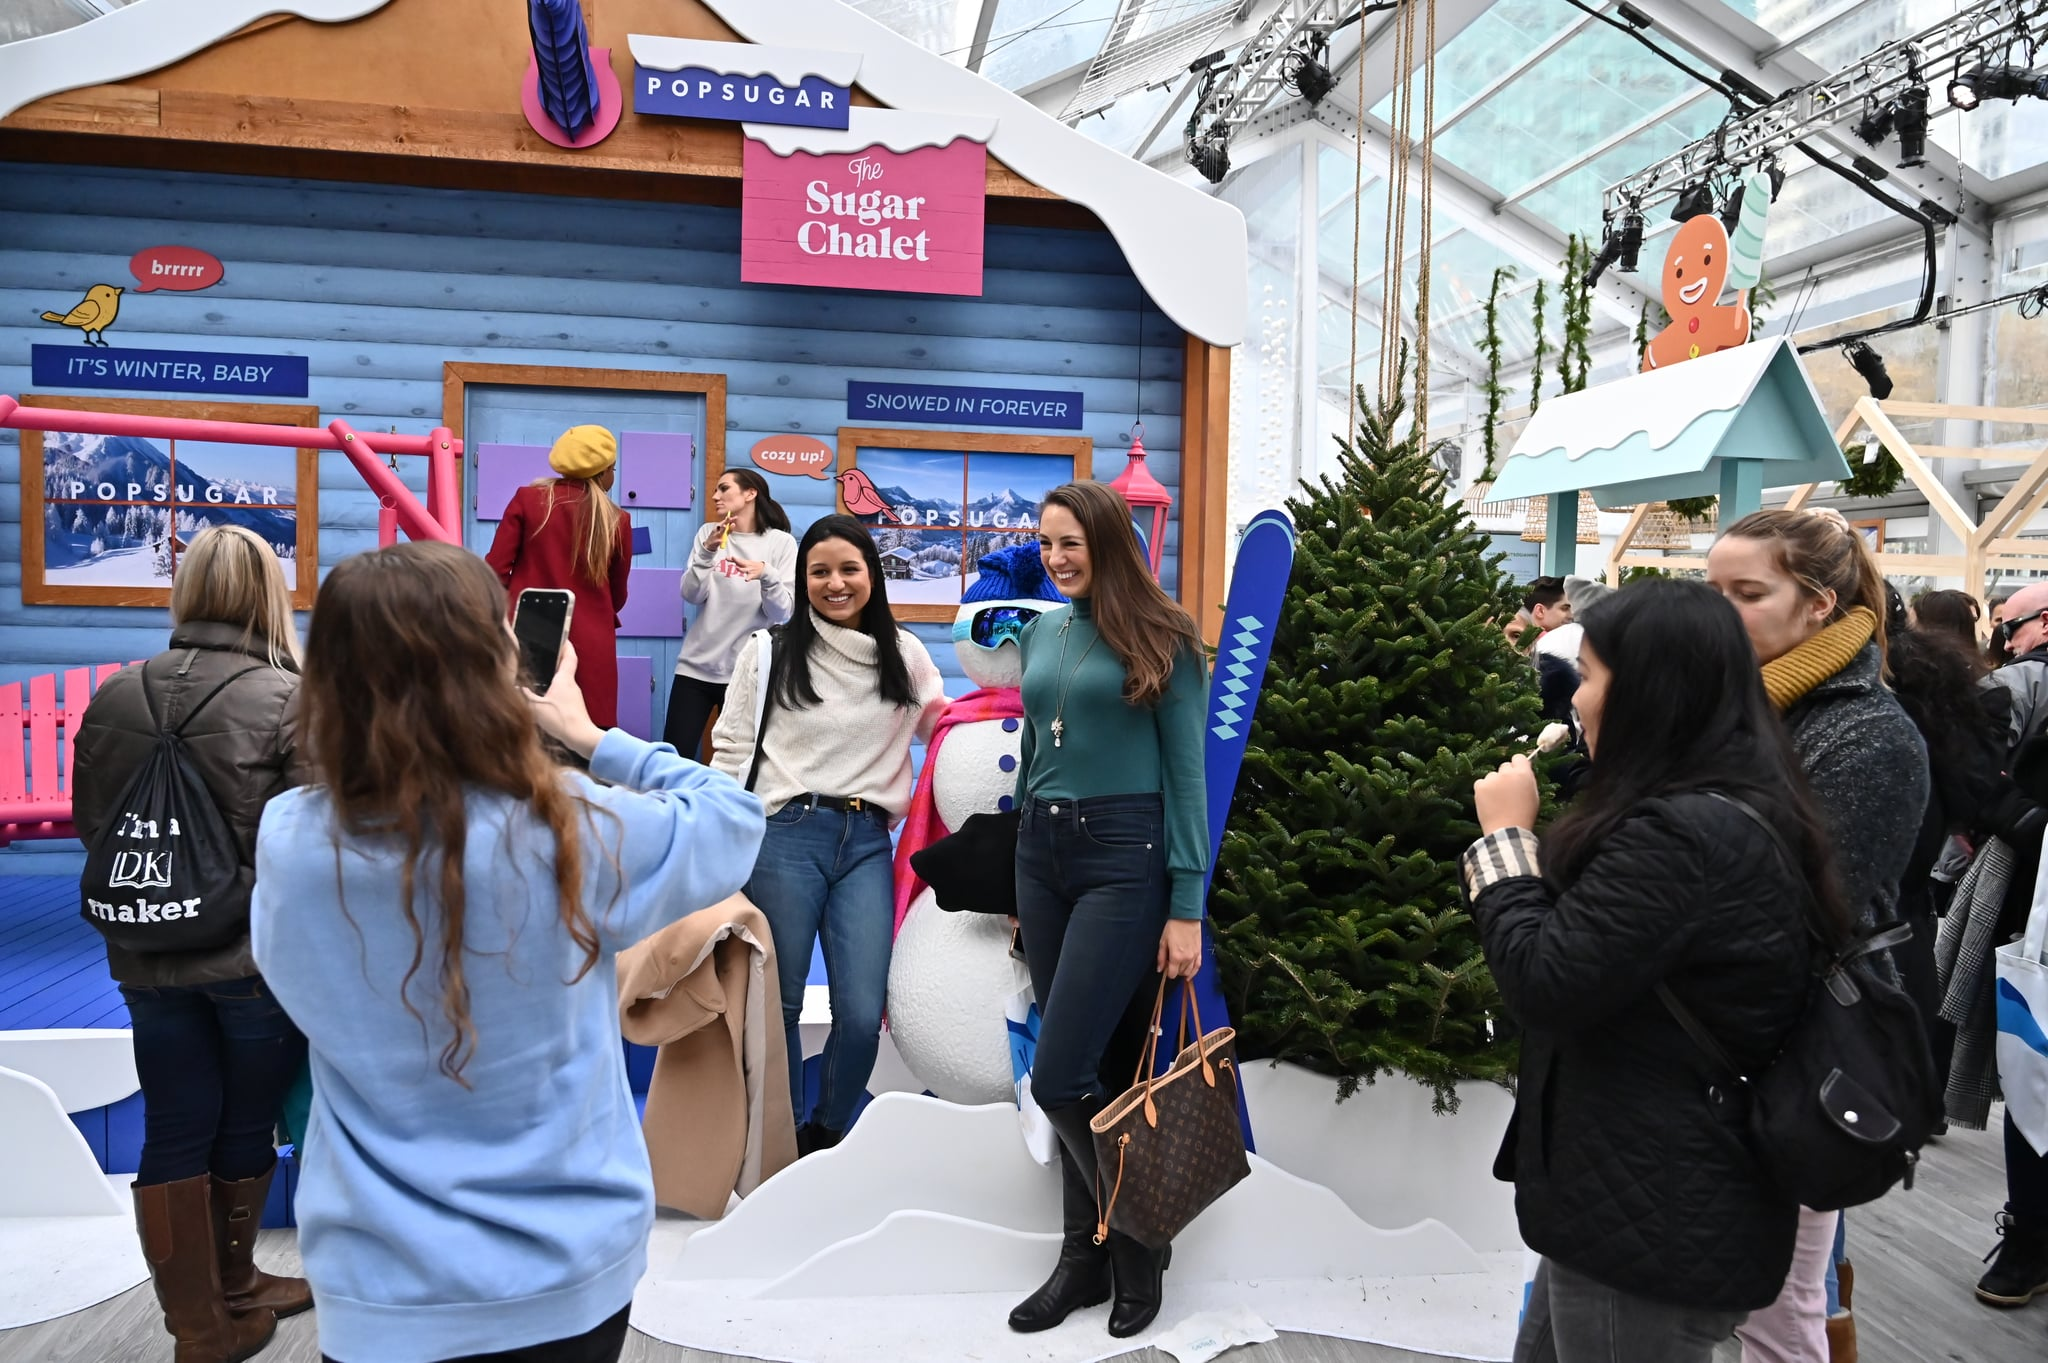 NEW YORK, NEW YORK - NOVEMBER 23:  Guests attend POPSUGAR's first-ever Sugar Chalet Winter Wonderland In Bryant Park on November 23, 2019 in New York City. (Photo by Astrid Stawiarz/Getty Images for POPSUGAR)